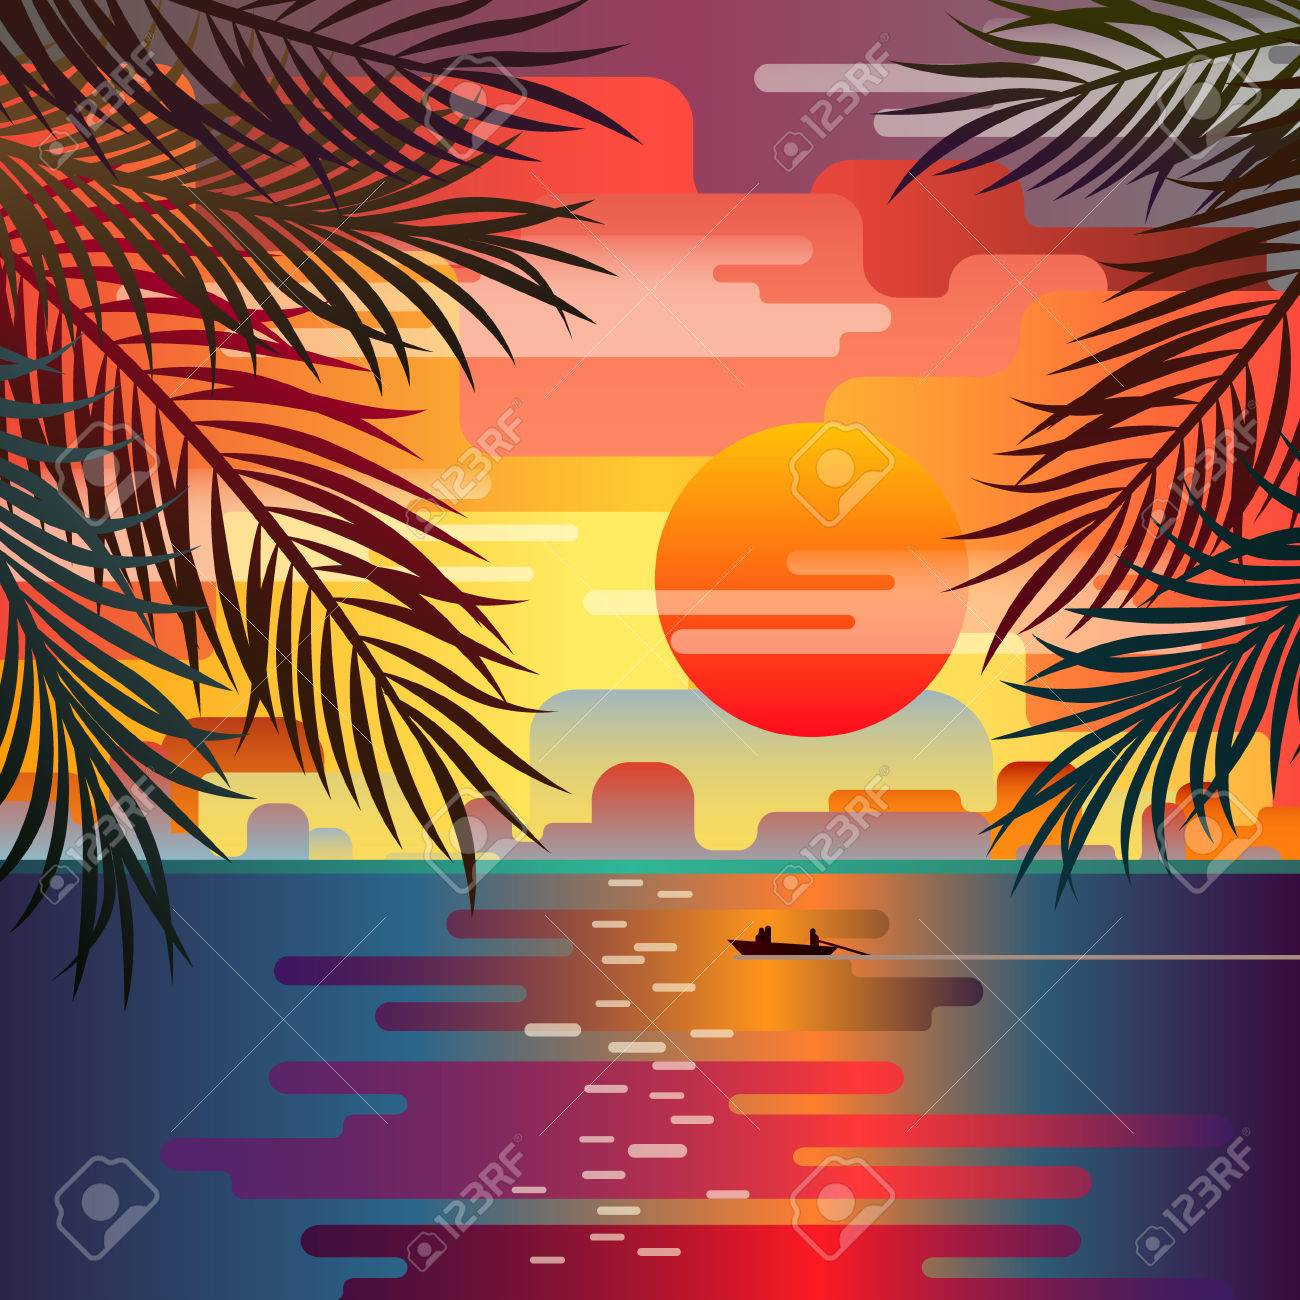 Beautiful Beach Sunset Landscape With Palm Leaves Over The Sea Romantic